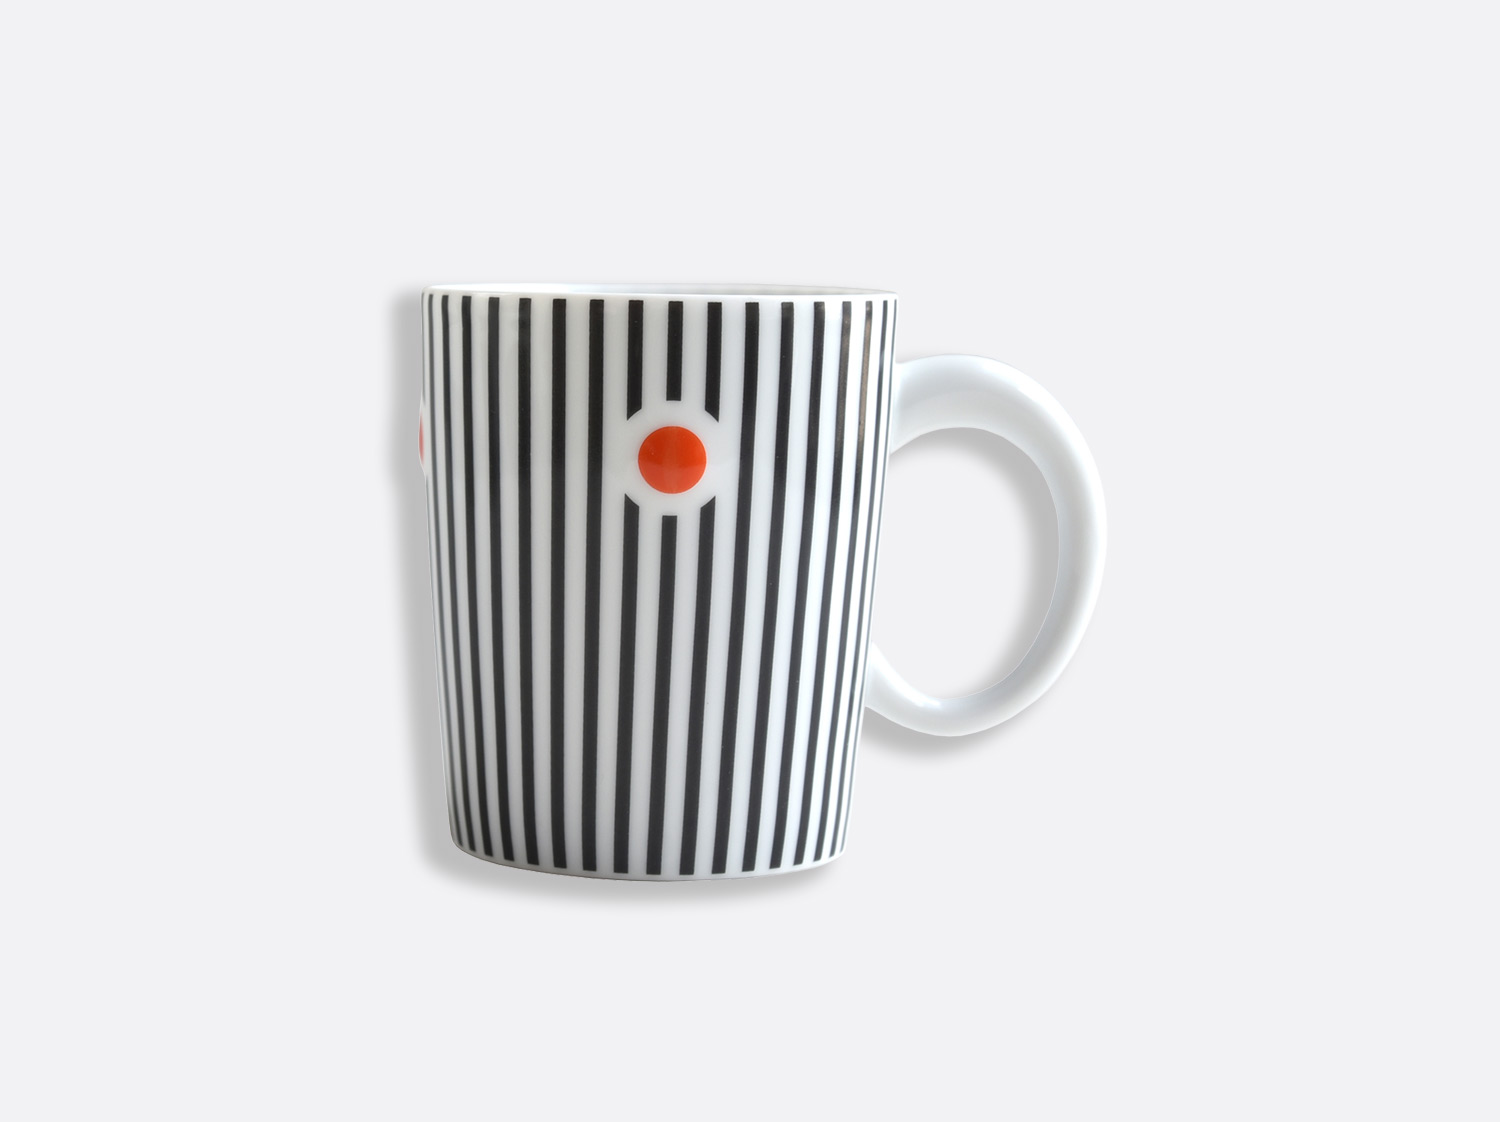 Mug 25 cl anthracite en porcelaine de la collection Delphos - Olivier Gagnère Bernardaud